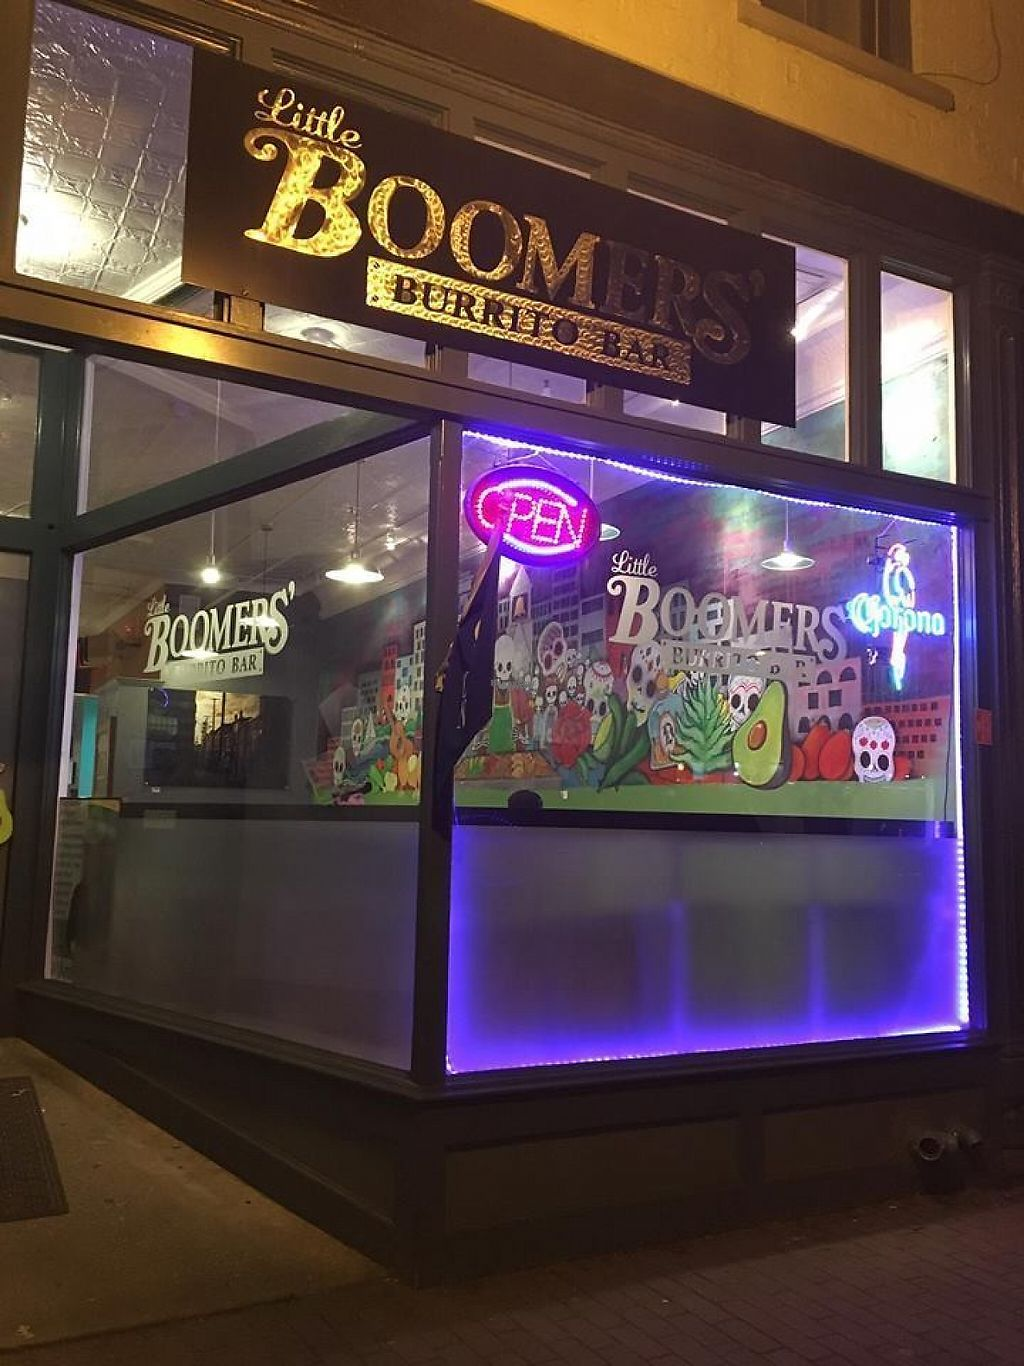 """Photo of Little Boomers' Burrito Bar  by <a href=""""/members/profile/community4"""">community4</a> <br/>Little Boomers' Burrito Bar  <br/> March 20, 2017  - <a href='/contact/abuse/image/80970/238582'>Report</a>"""